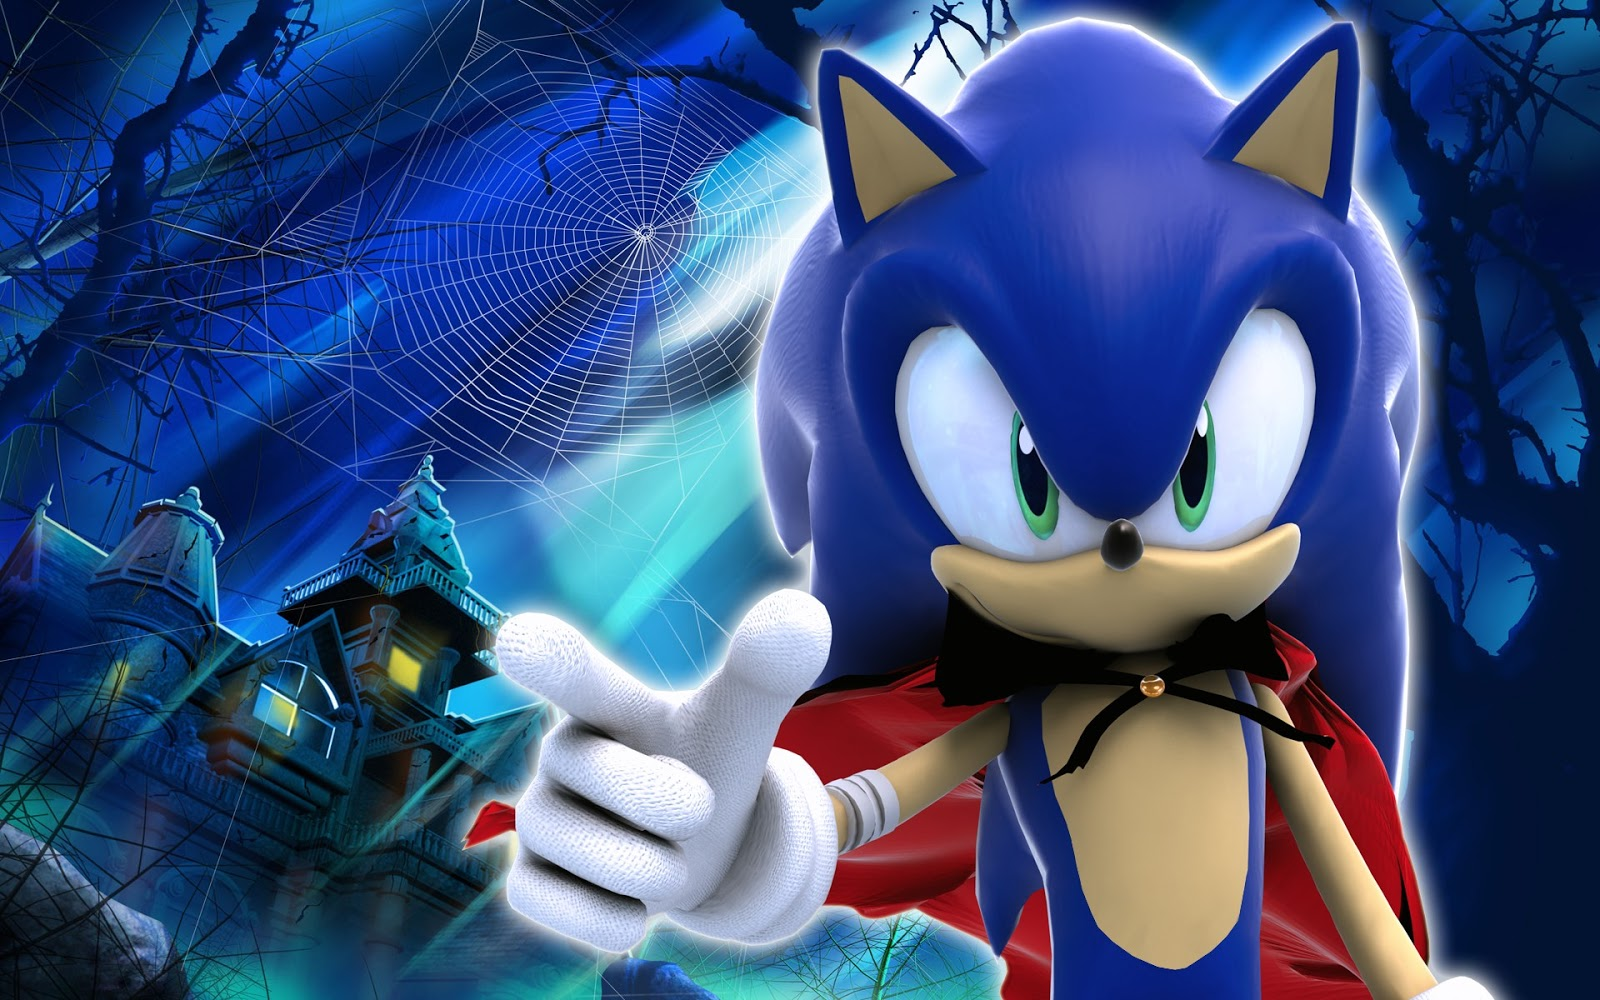 Sonic The Hedgehog Wallpaper HD